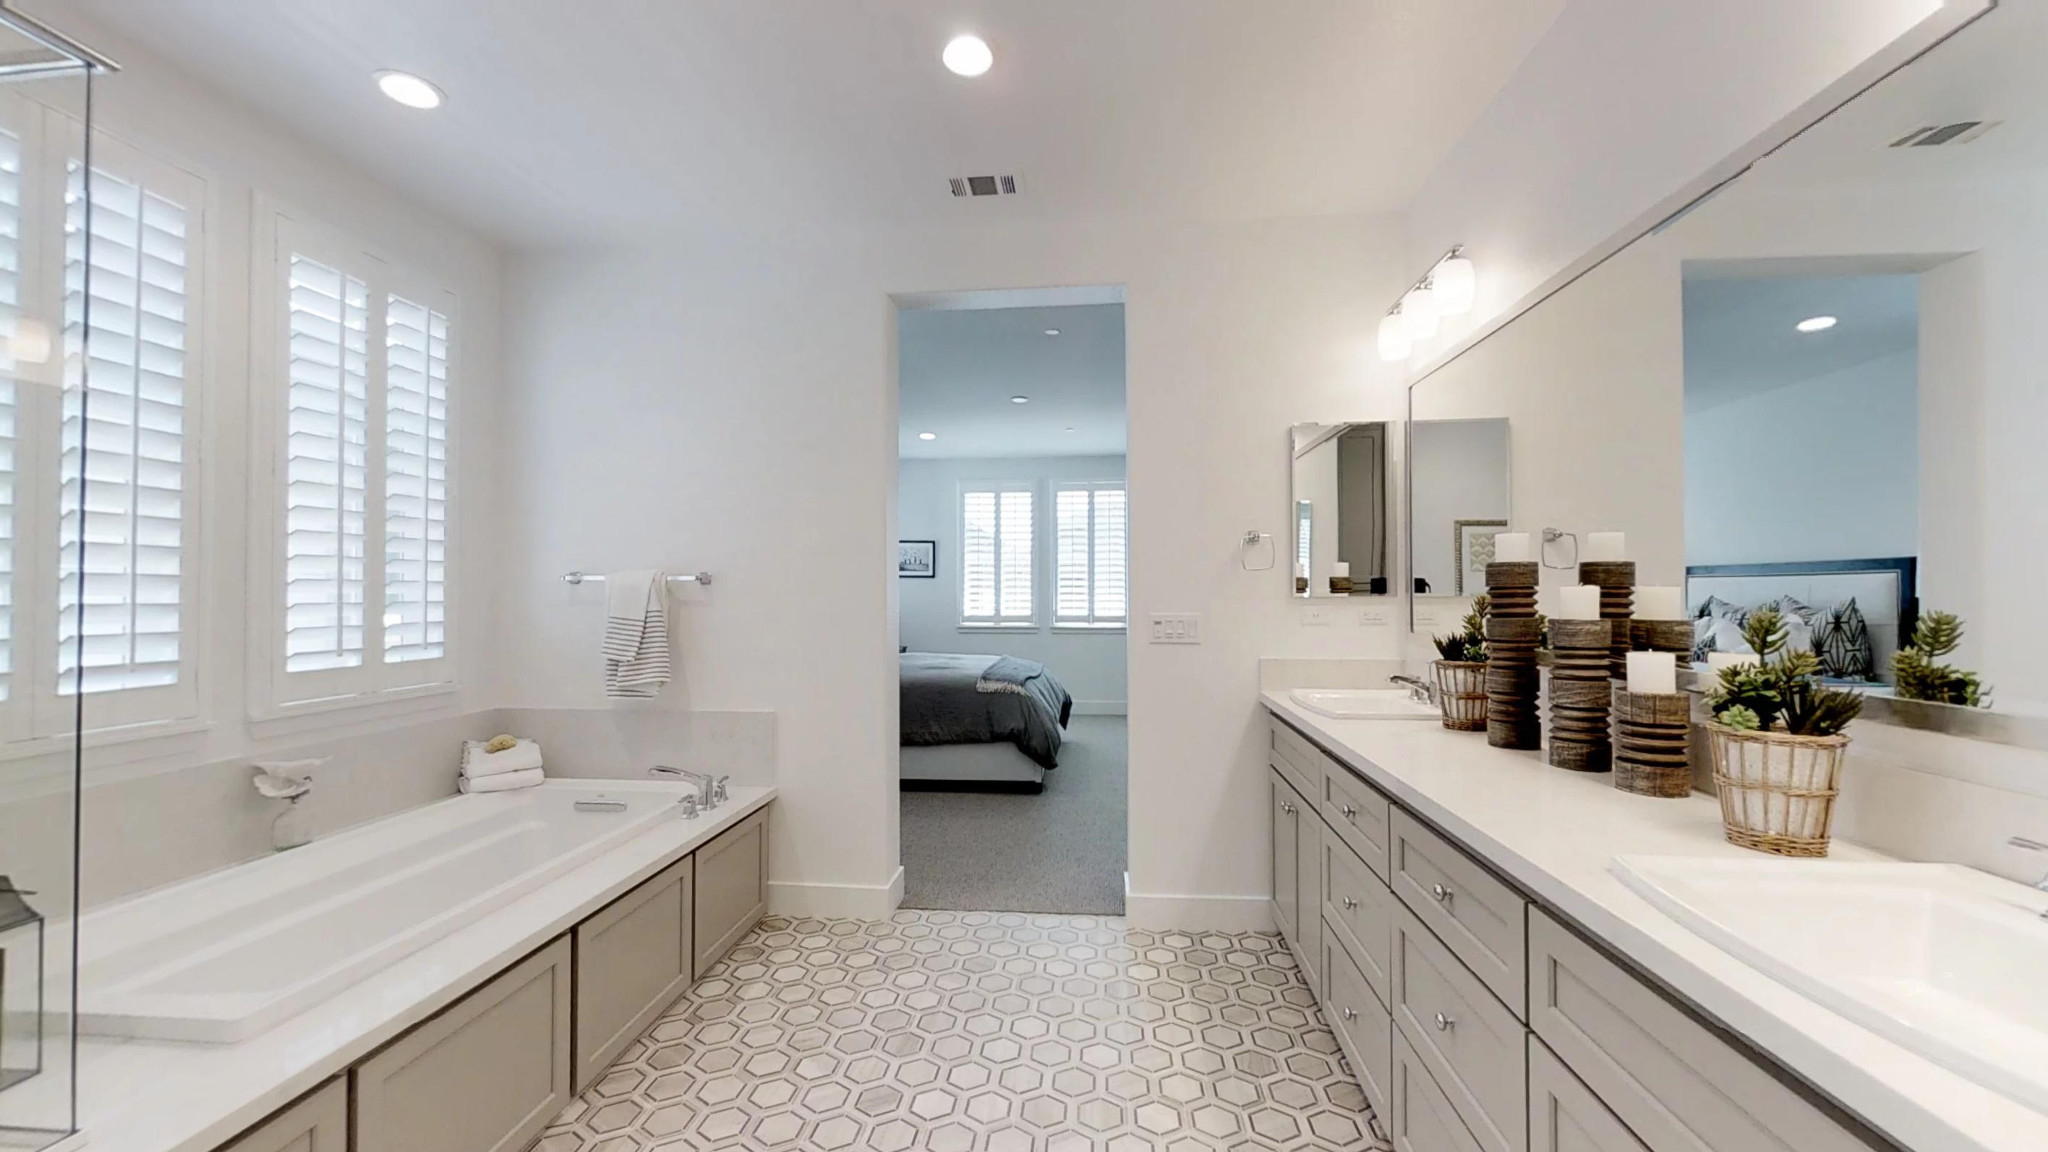 Plan 2 master bathroom with soaking tub, walk-in shower, and double vanity